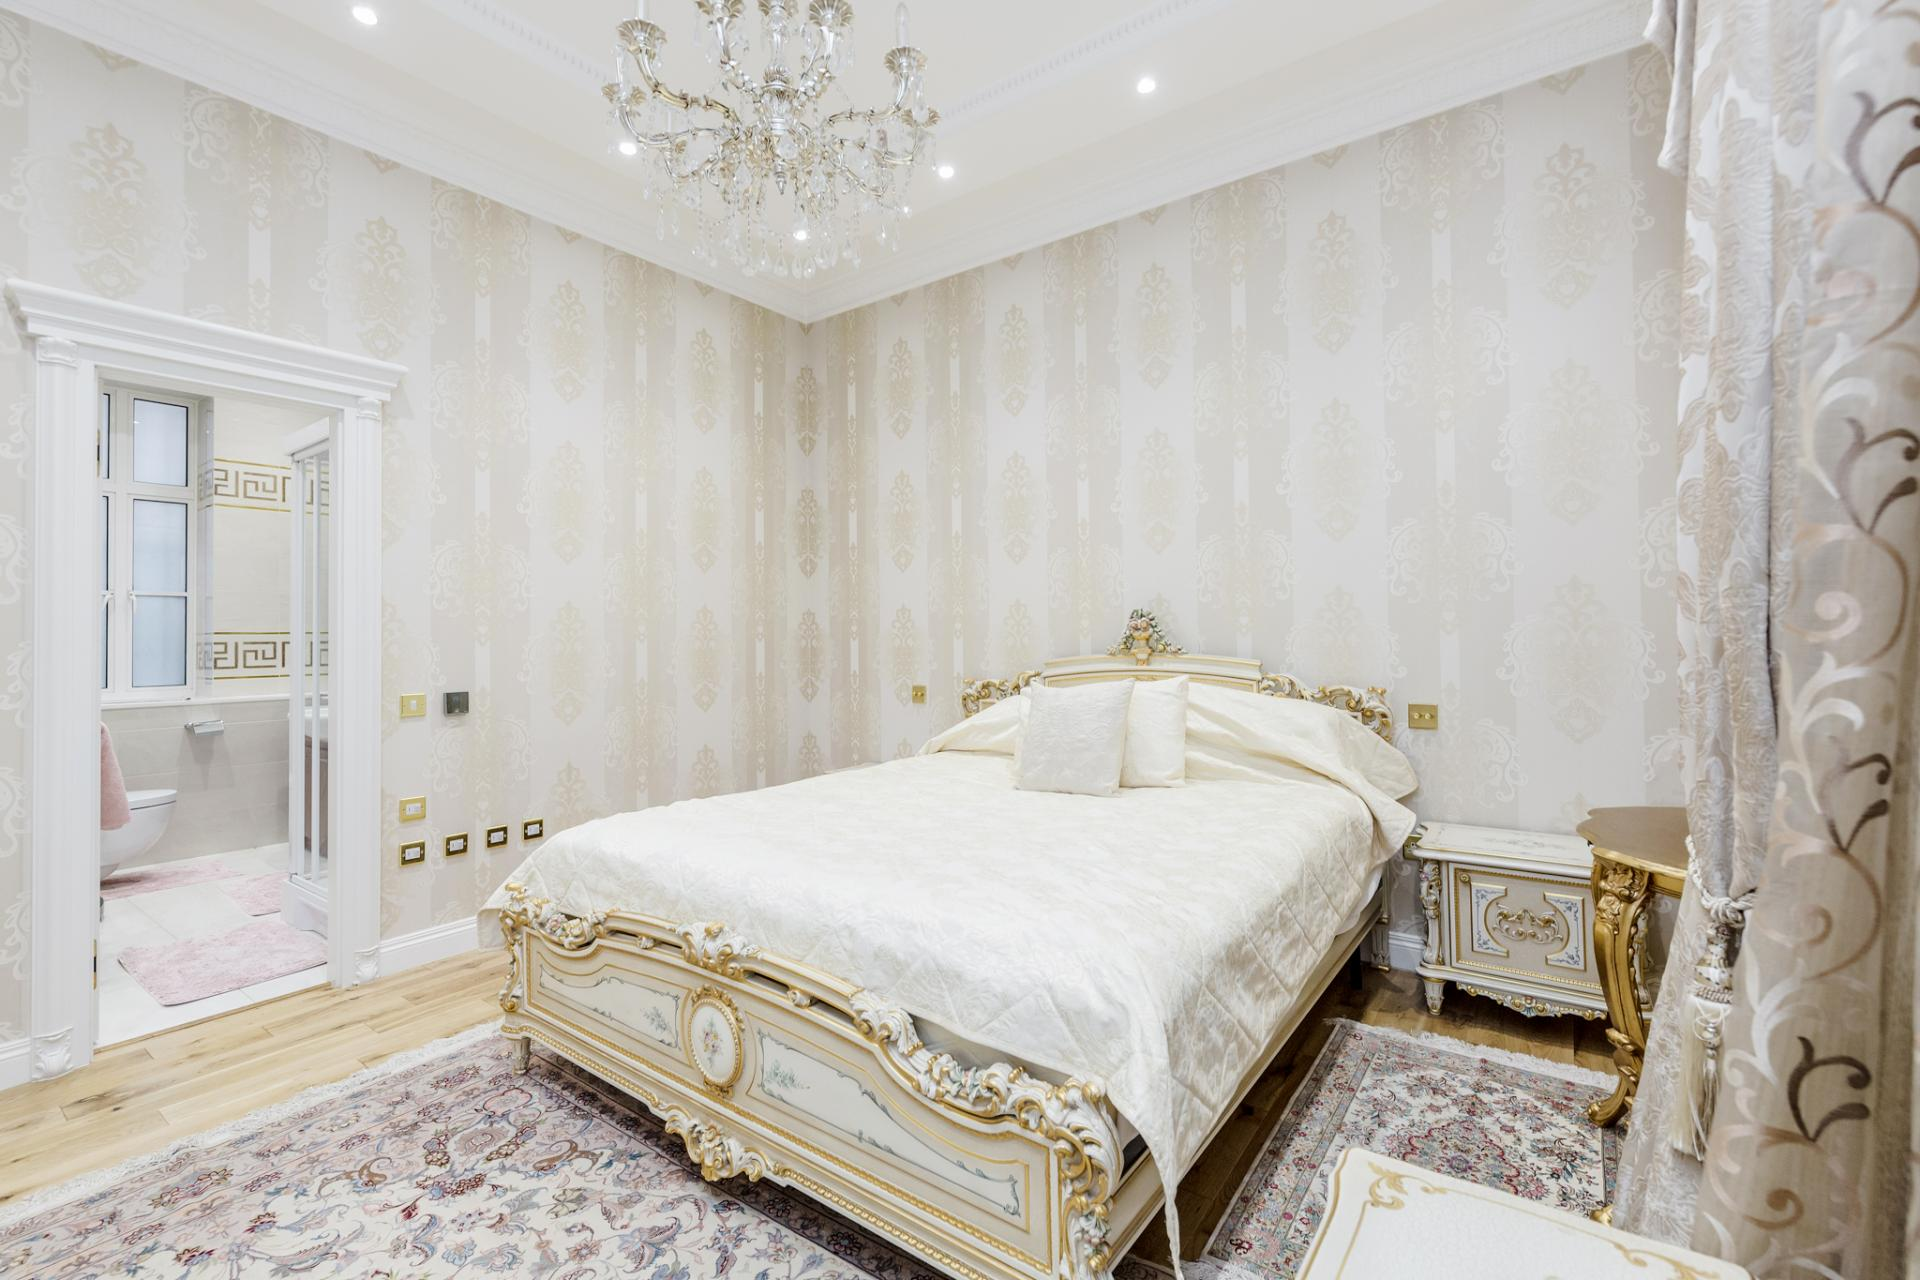 Bedroom at Grosvenor Square Apartment, Mayfair, London - Citybase Apartments